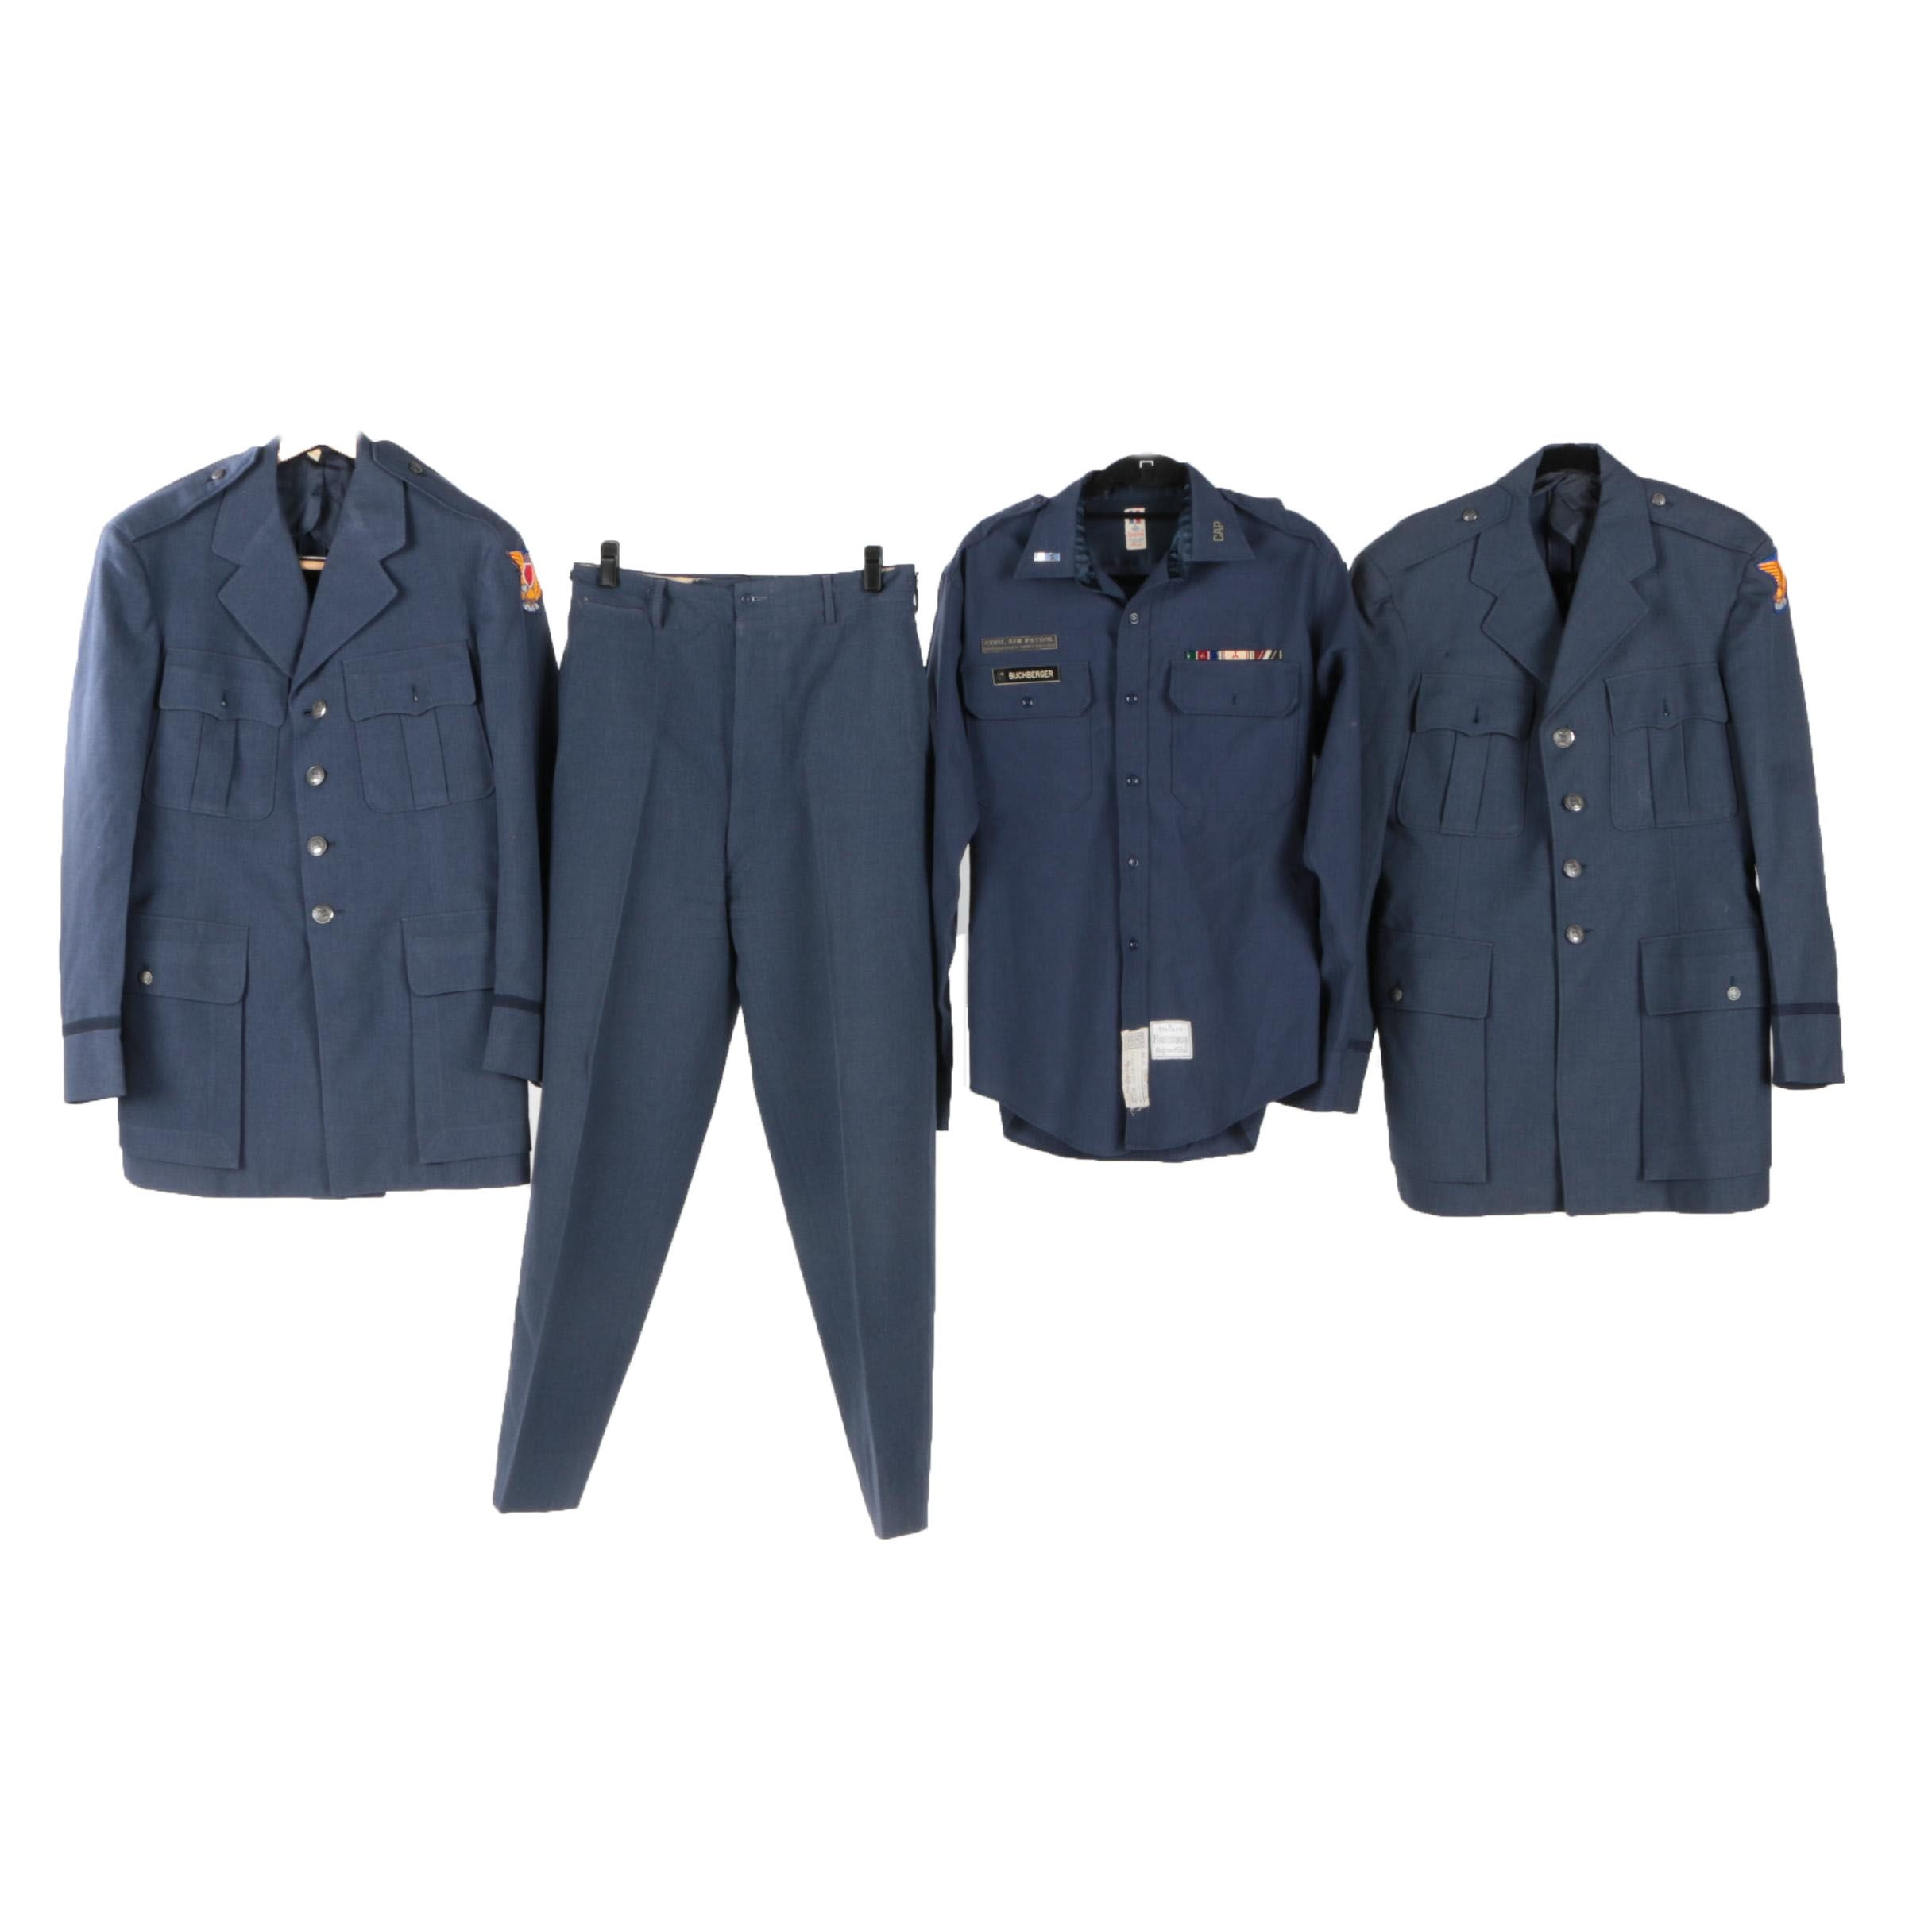 Civil Air Patrol Shirts, Pants and Jackets